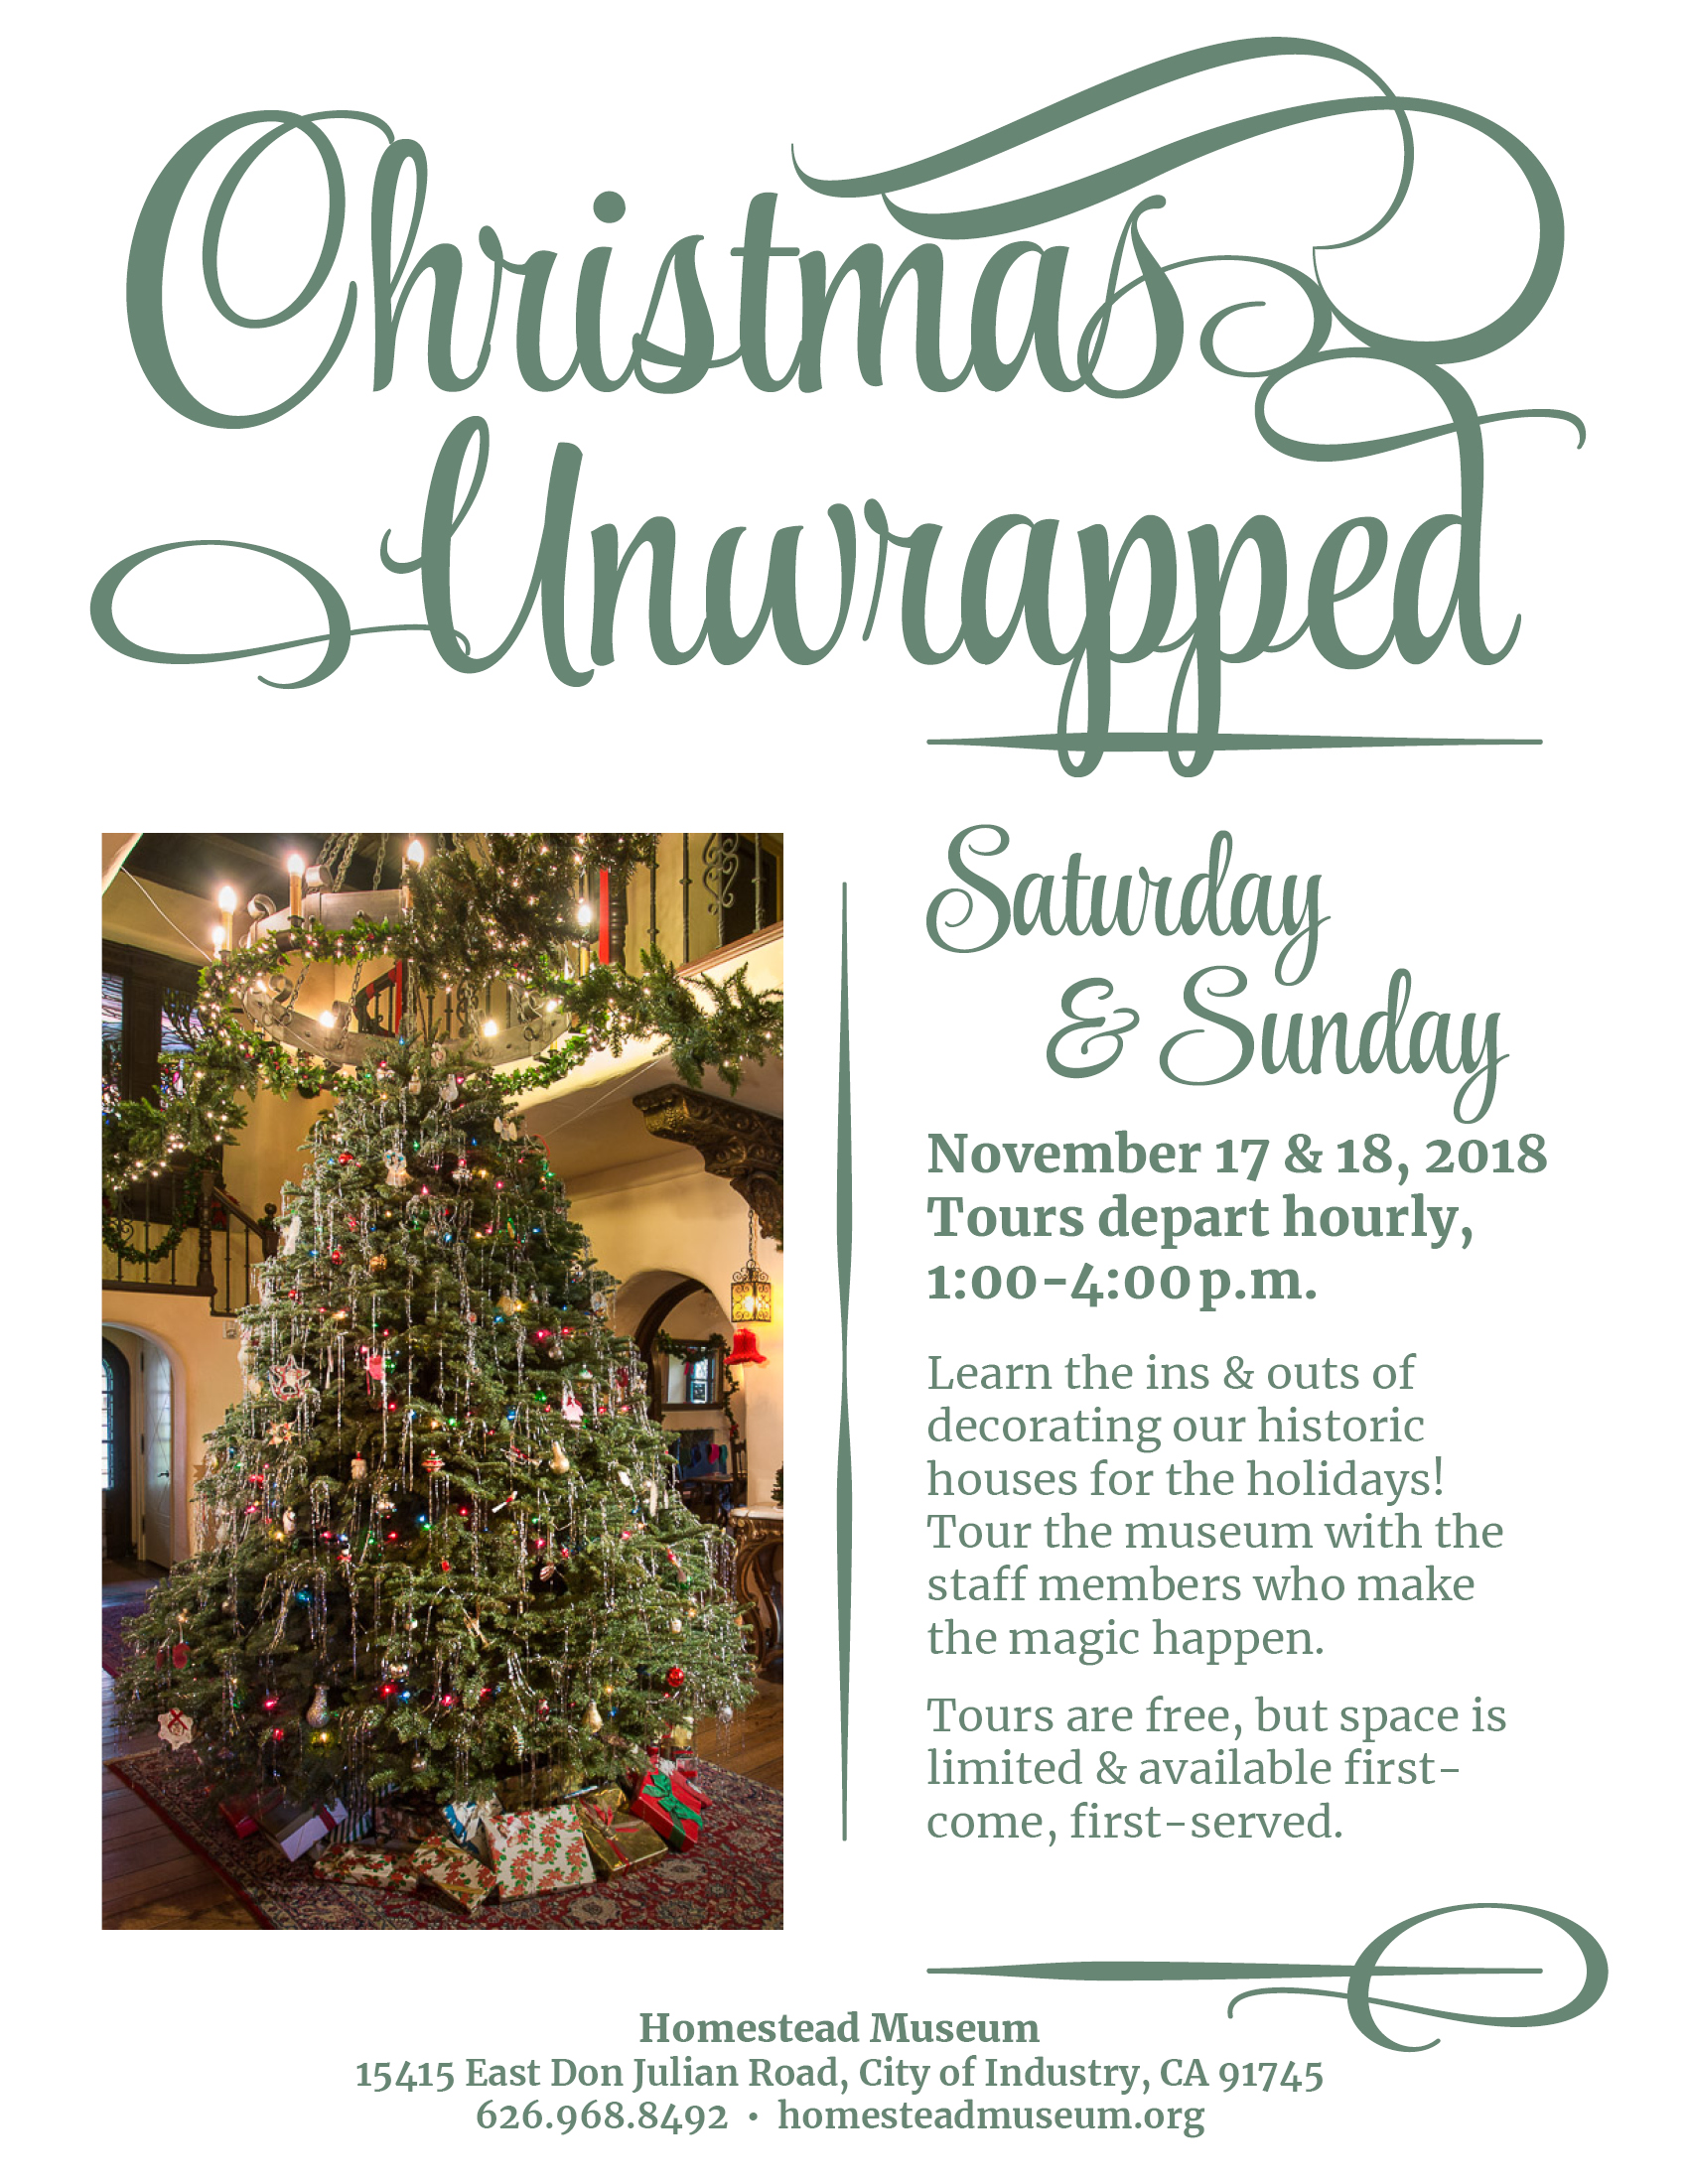 2018 Christmas Unwrapped flyer